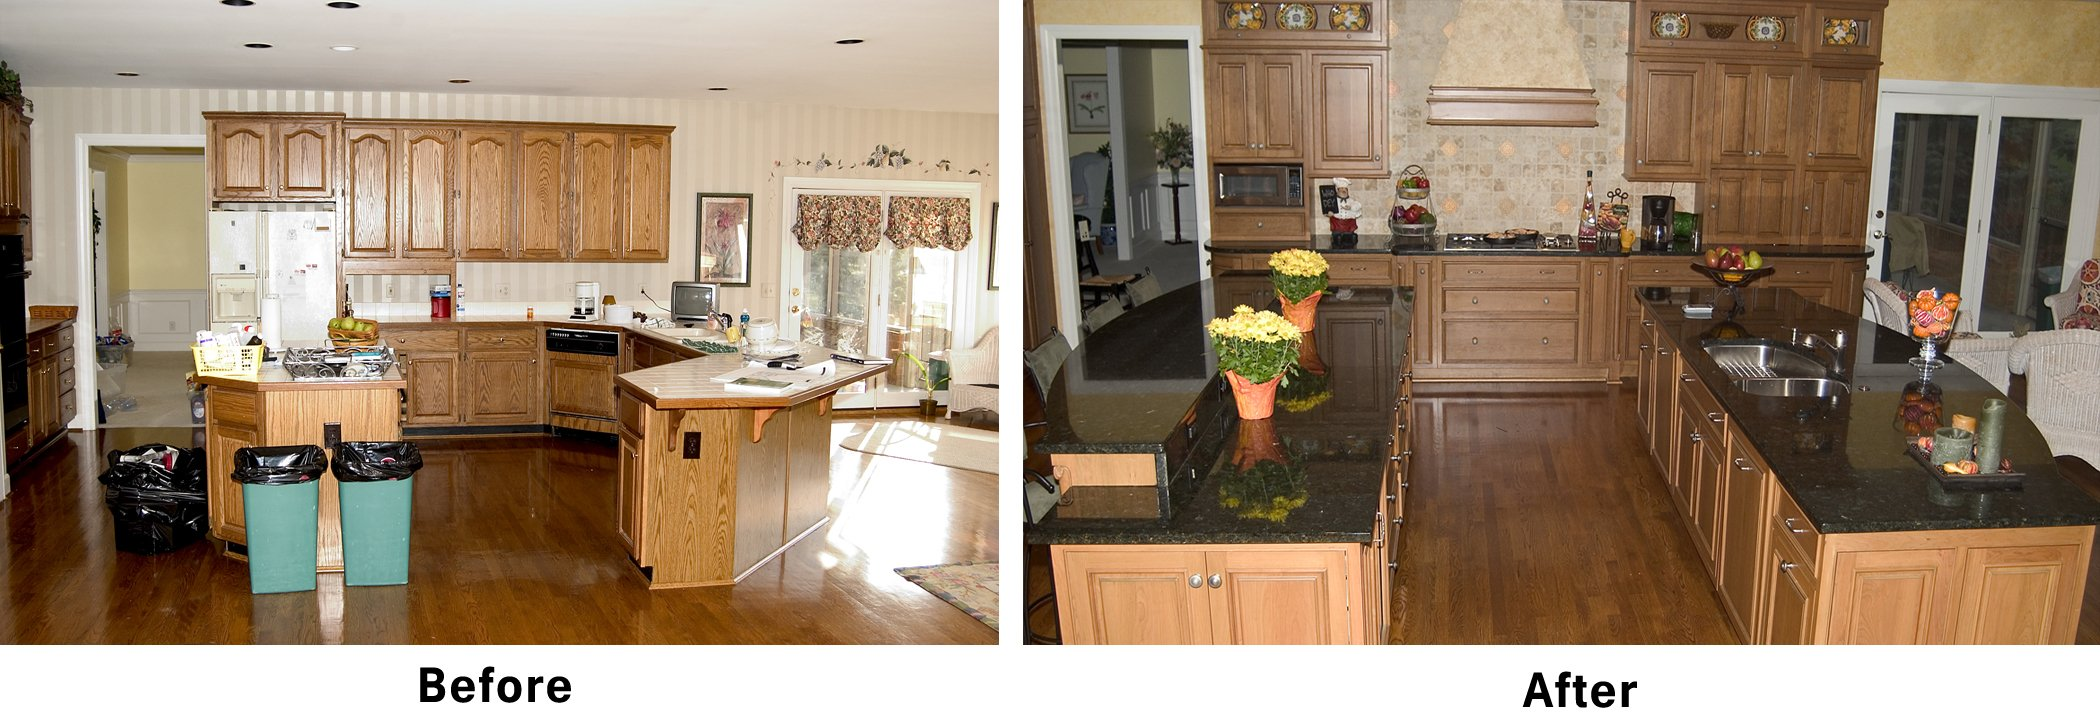 Kitchens. Stunning Home Remodeling Projects In Cincinnati ...